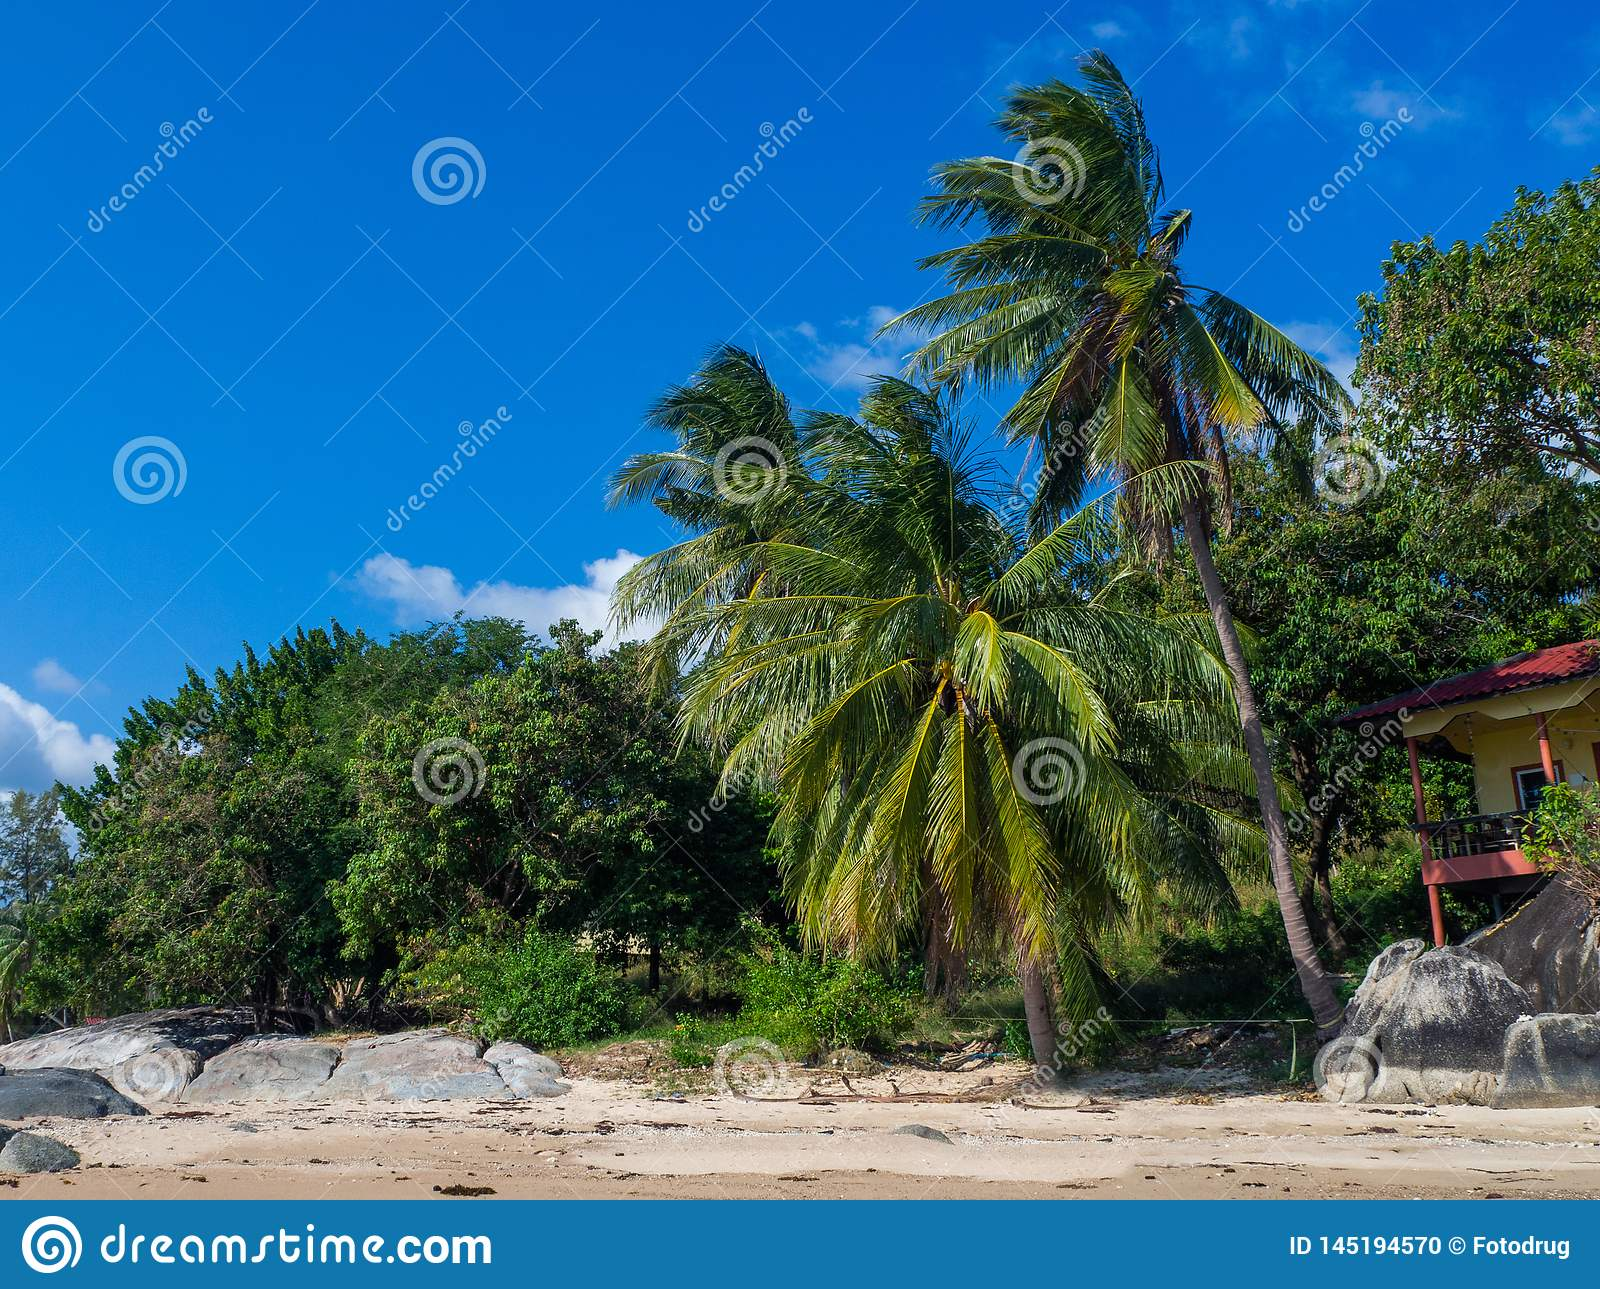 Beautiful pictures of sandy beaches on Koh Phangan